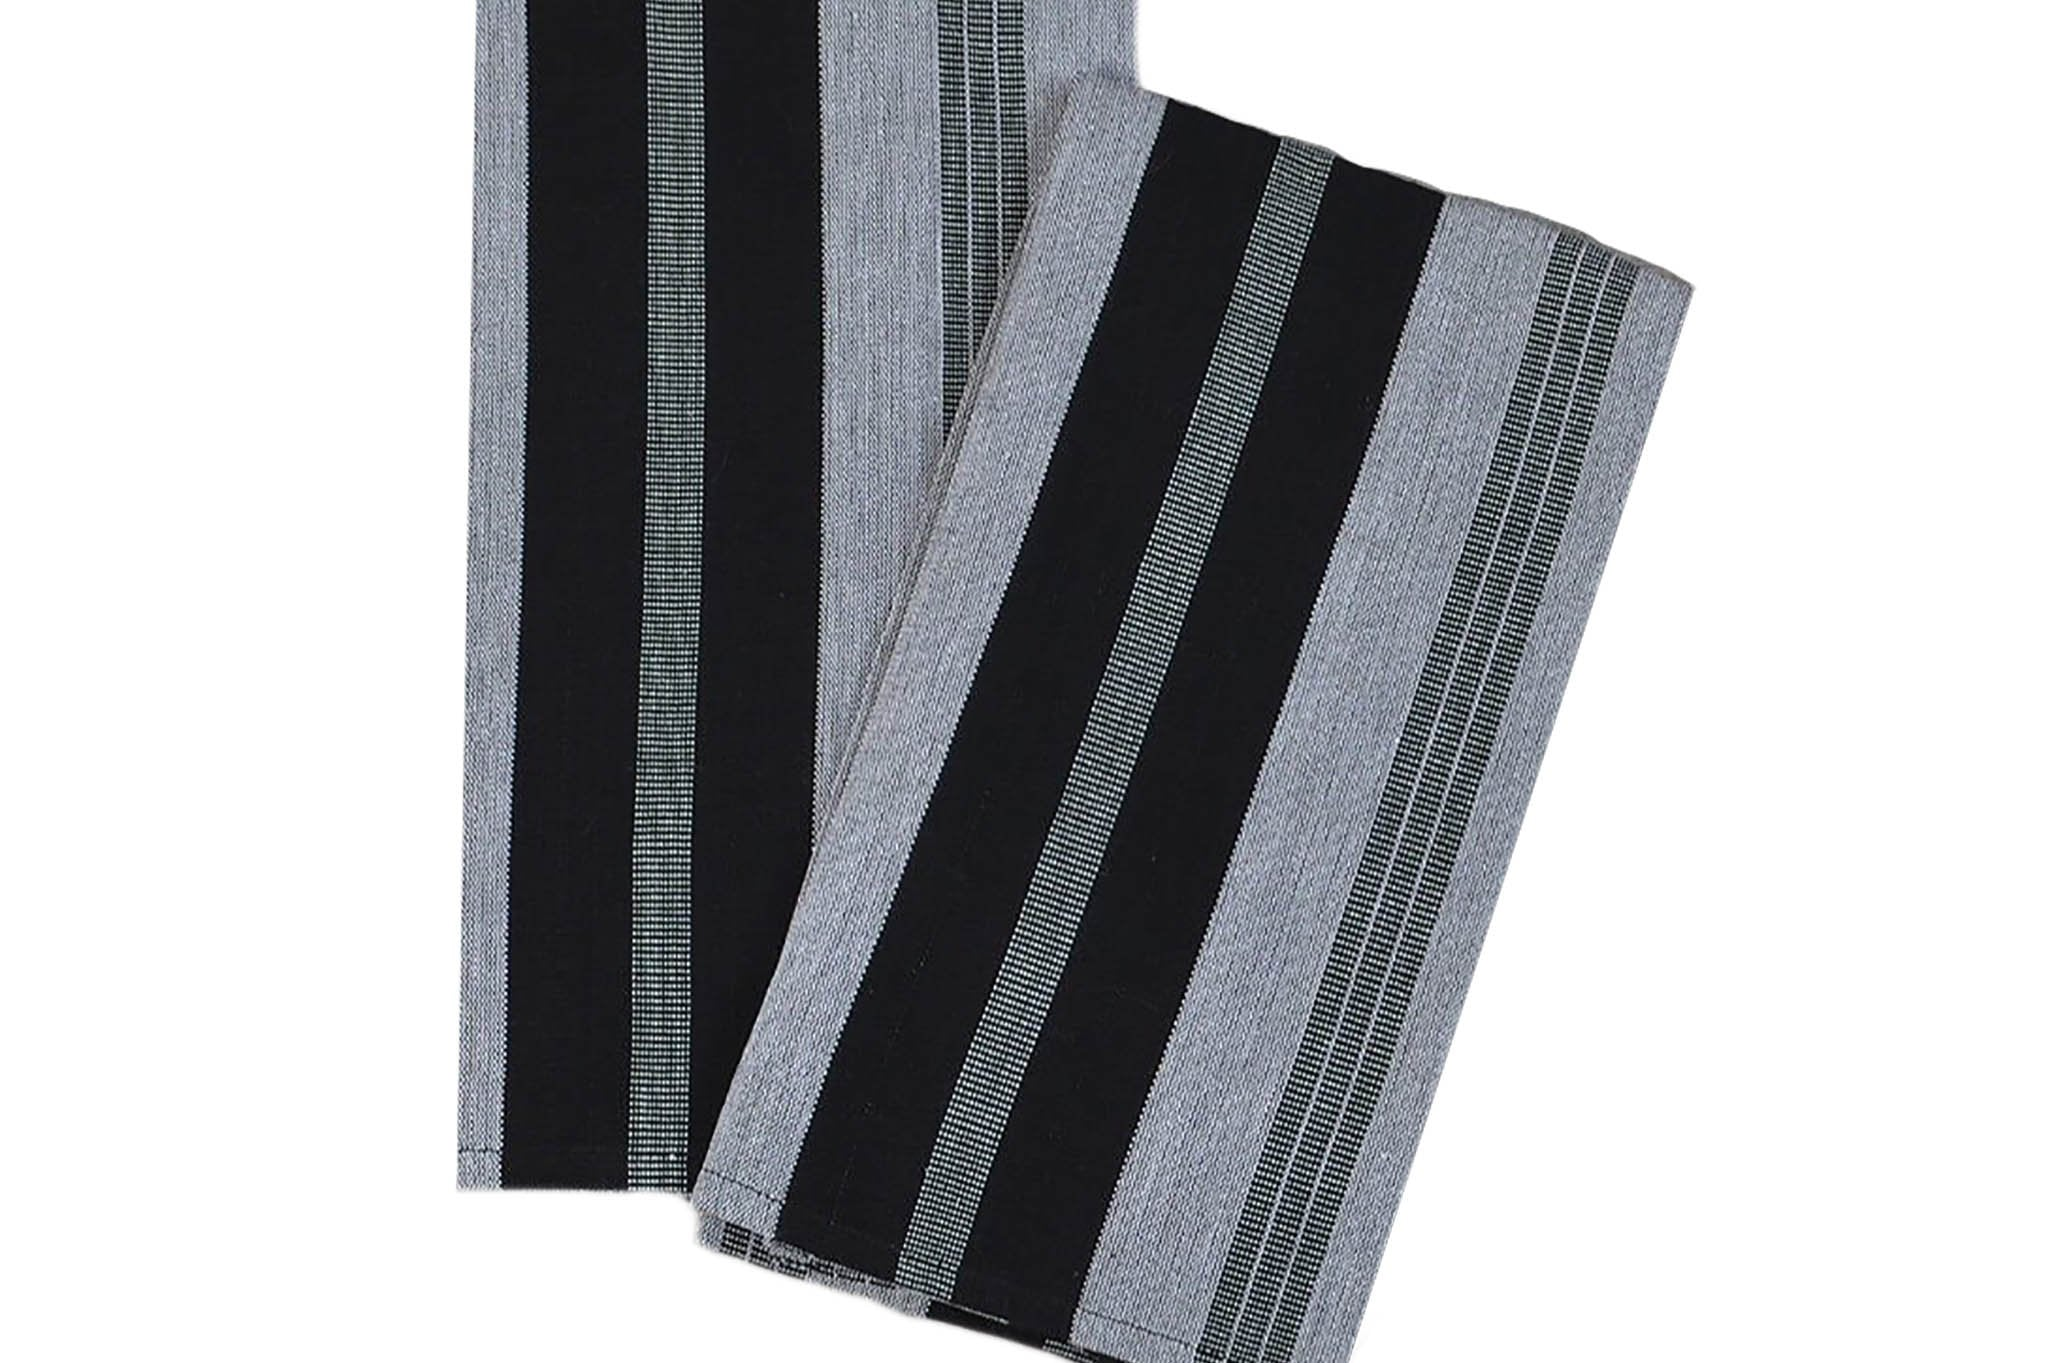 kitchen towels from guatemala: striped in black & gray